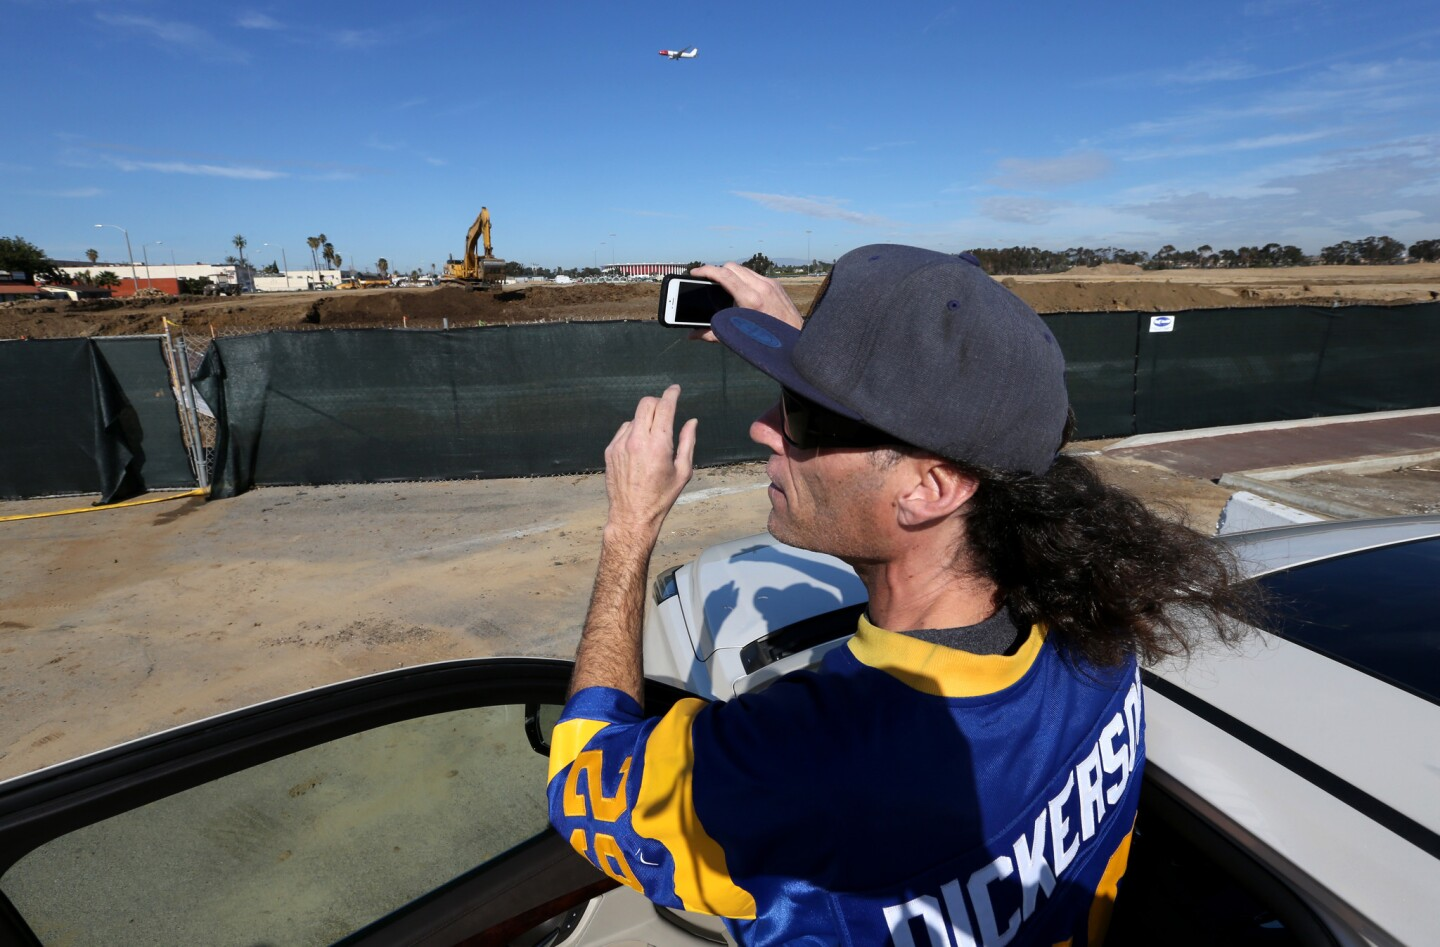 Longtime Rams football fan Dave Frazier, 50, visits the site of a new NFL stadium under construction near the Forum in Inglewood.